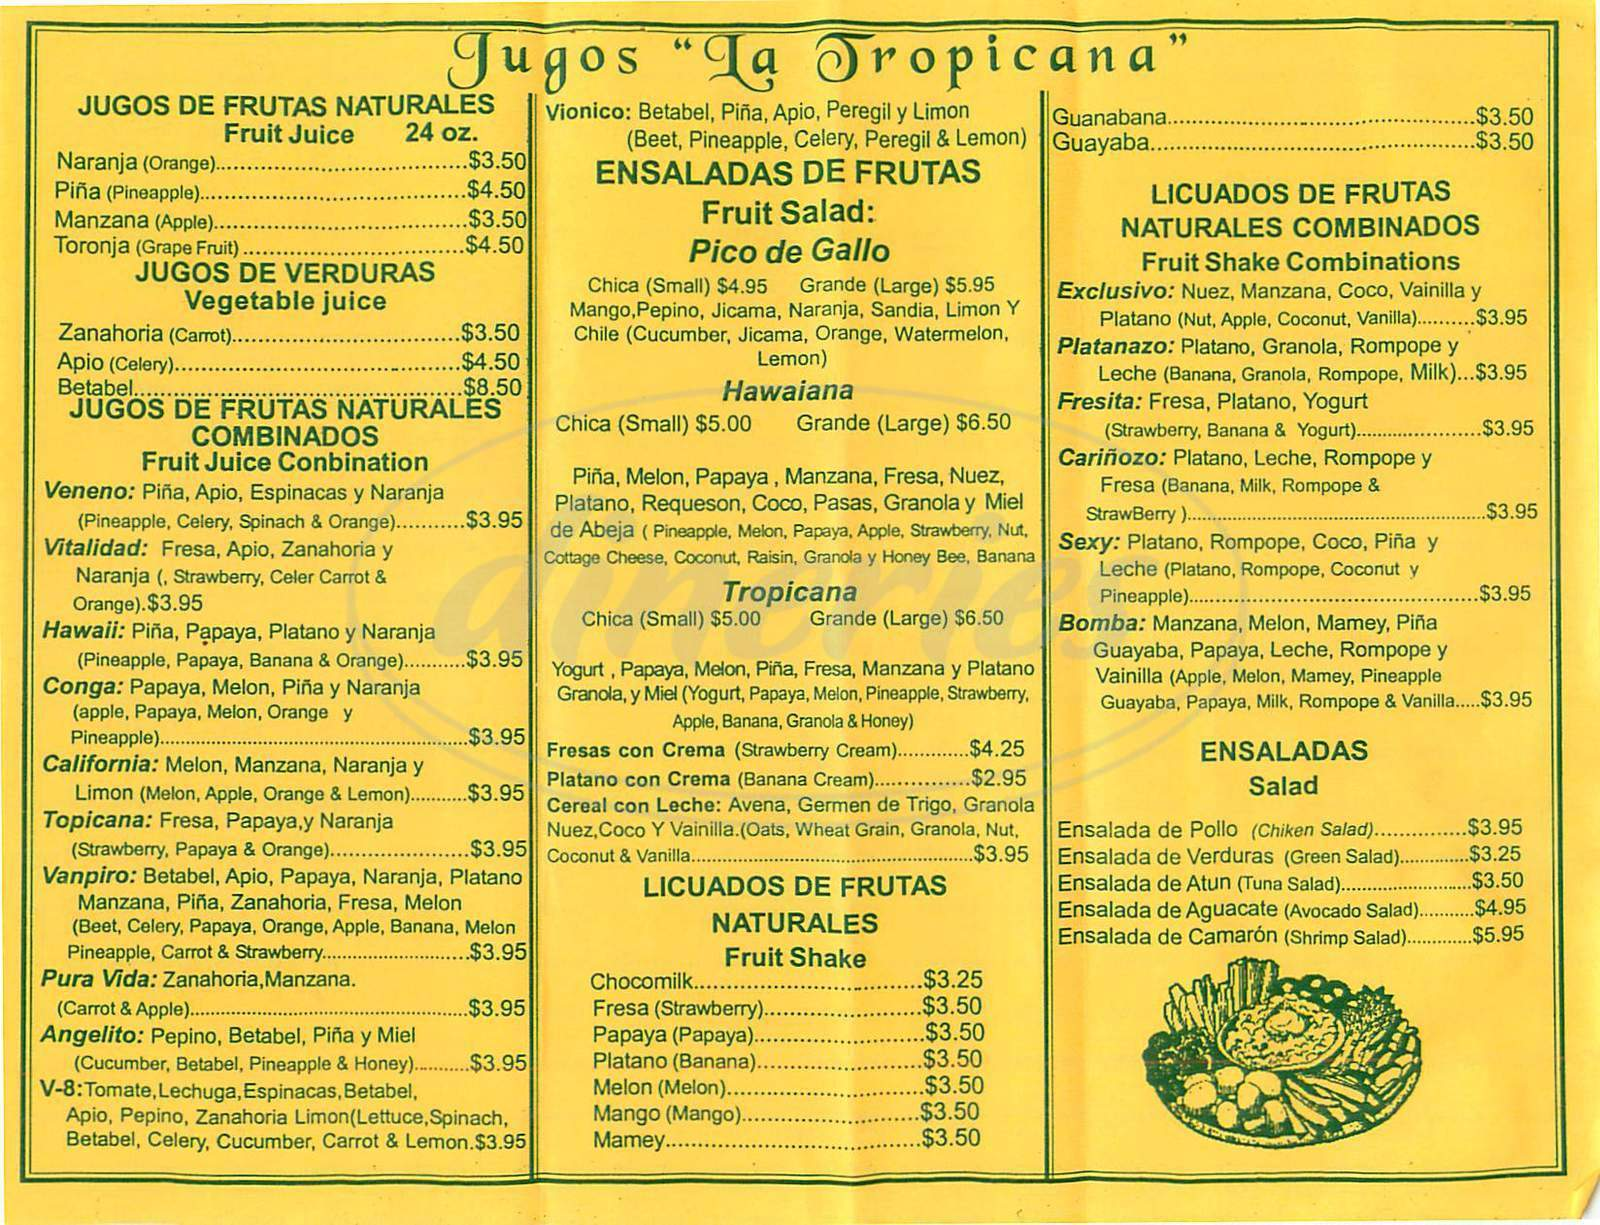 menu for Jugos la Tropicana